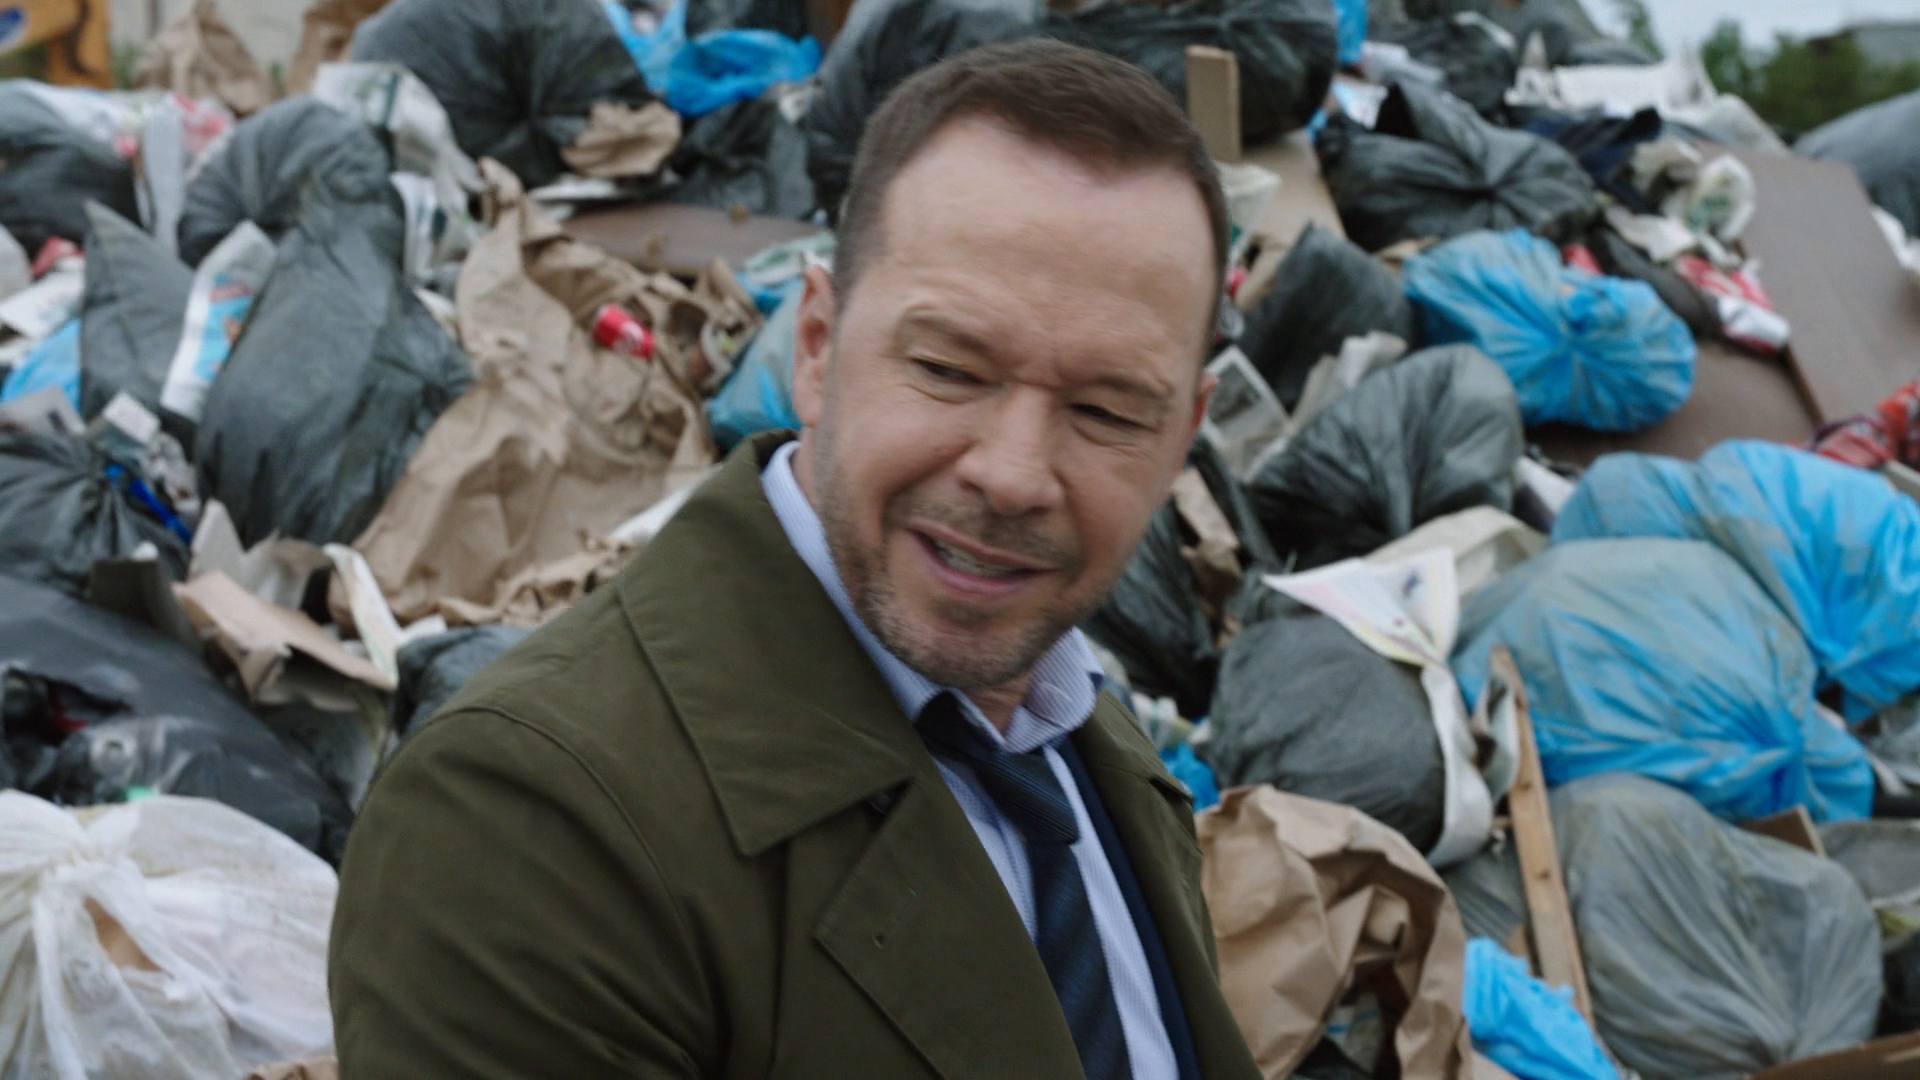 Blue Bloods S09E07 By Hook or By Crook 1080p AMZN WEB-DL DDP5 1 H 264-NTb